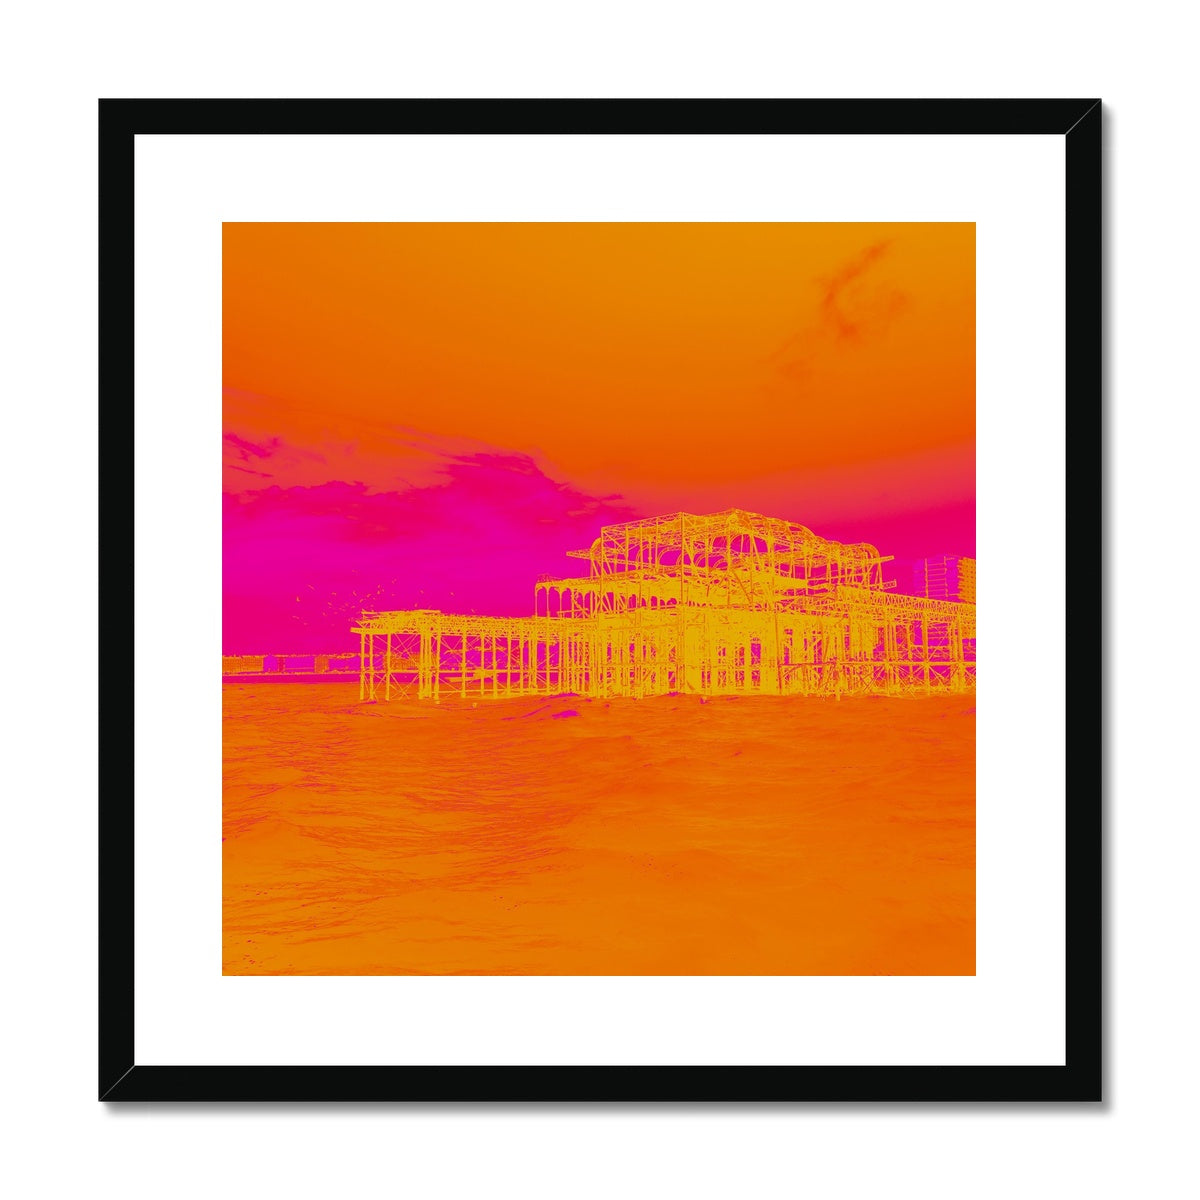 Sunset Ripple Framed & Mounted Print